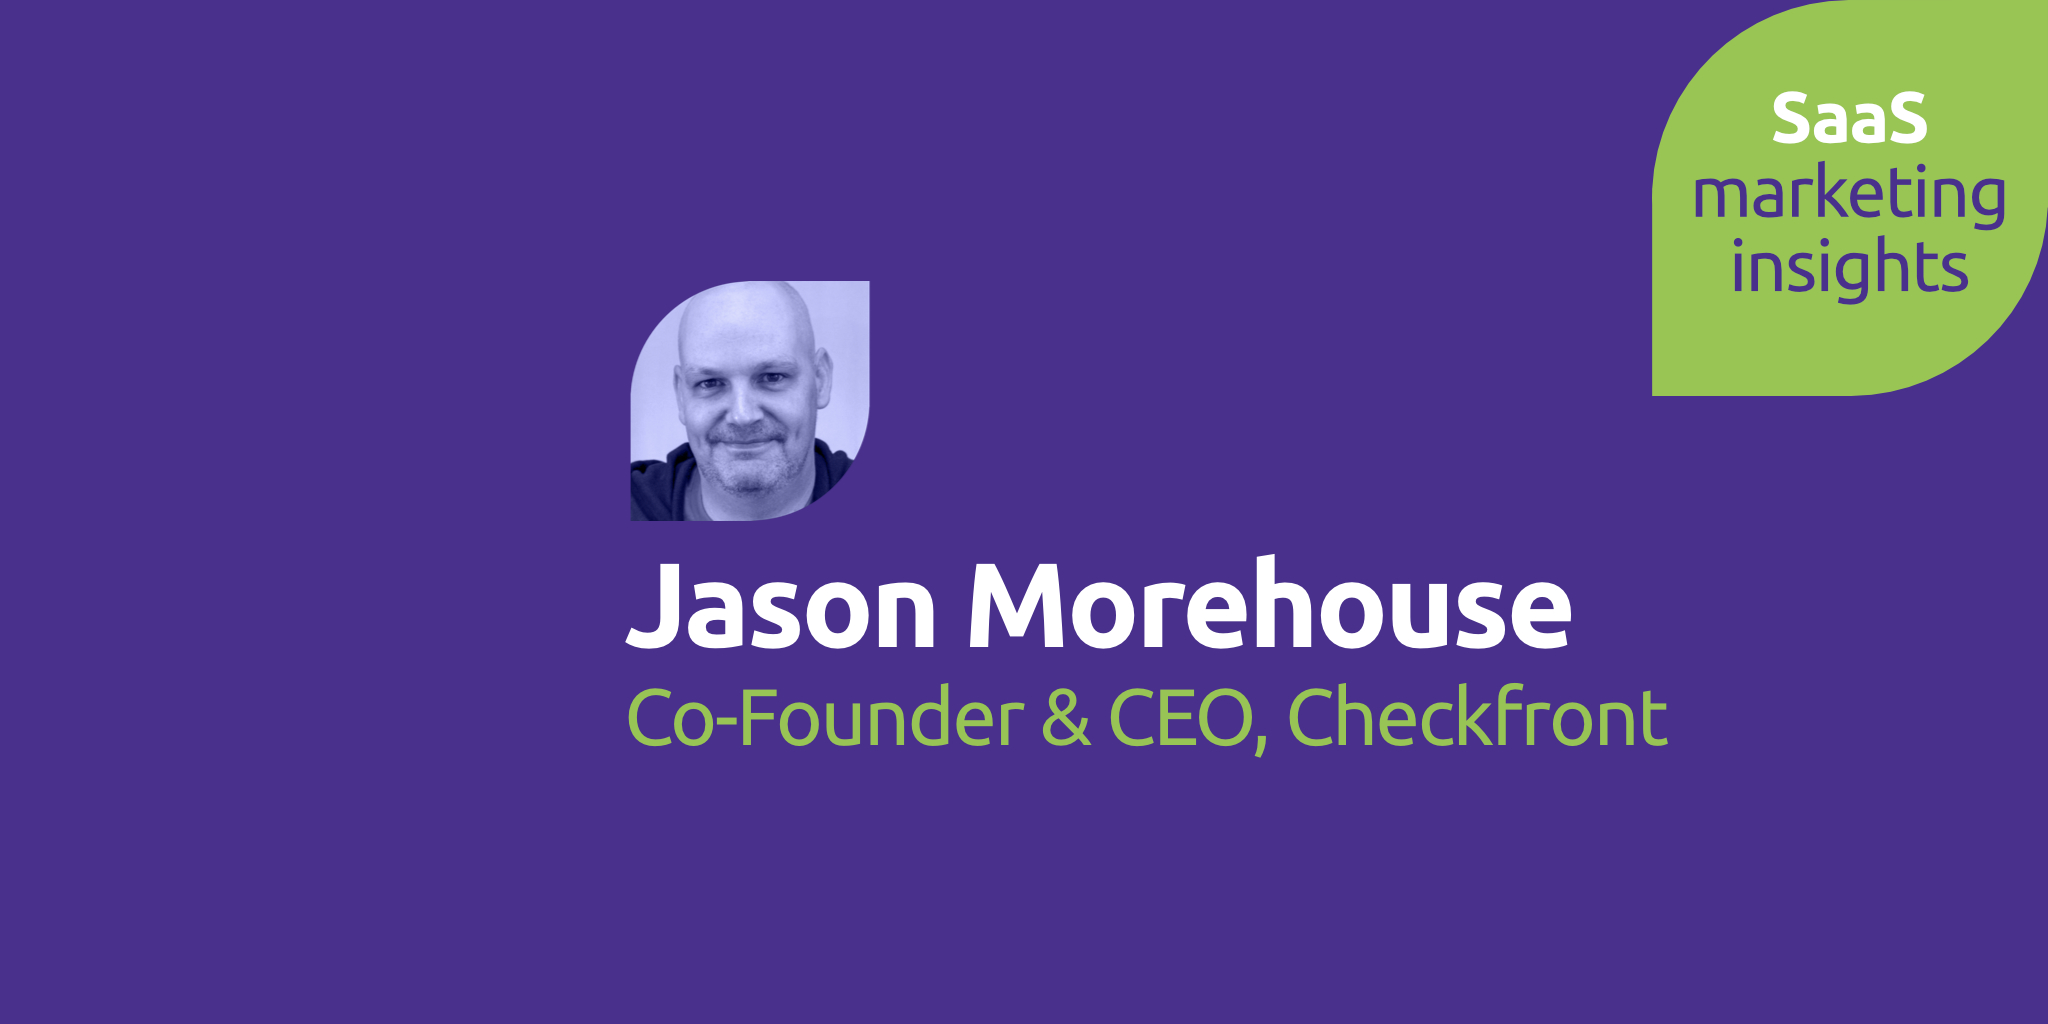 Jason Morehouse, Checkfront